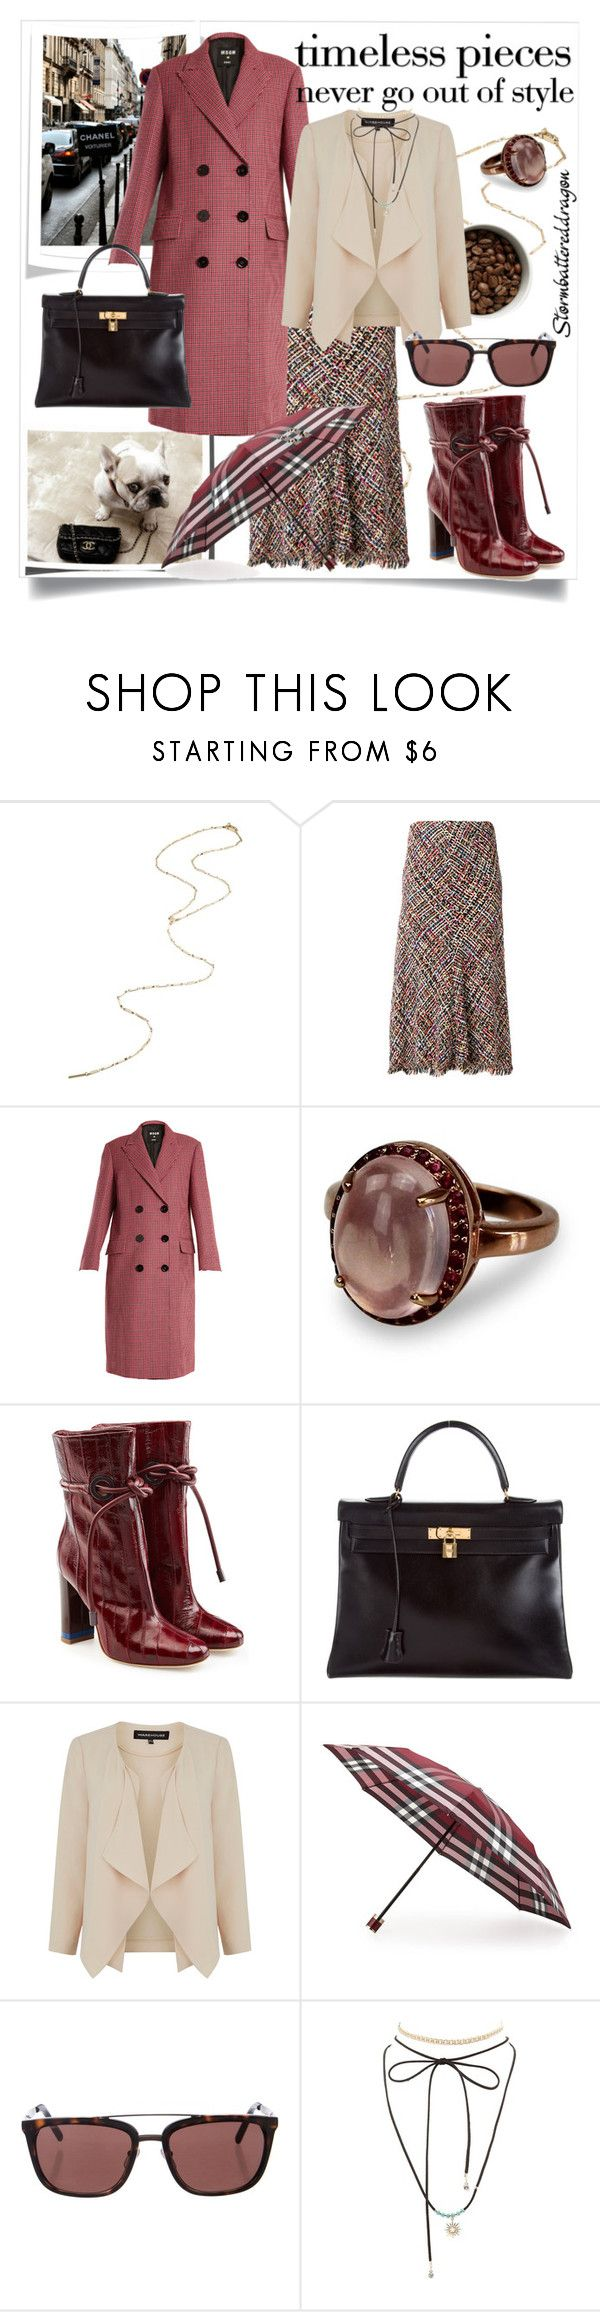 """""""riddles to solve"""" by stormbattereddragon ❤ liked on Polyvore featuring Eddie Borgo, Alexander McQueen, MSGM, Malone Souliers, Hermès, Warehouse, Burberry and Charlotte Russe"""